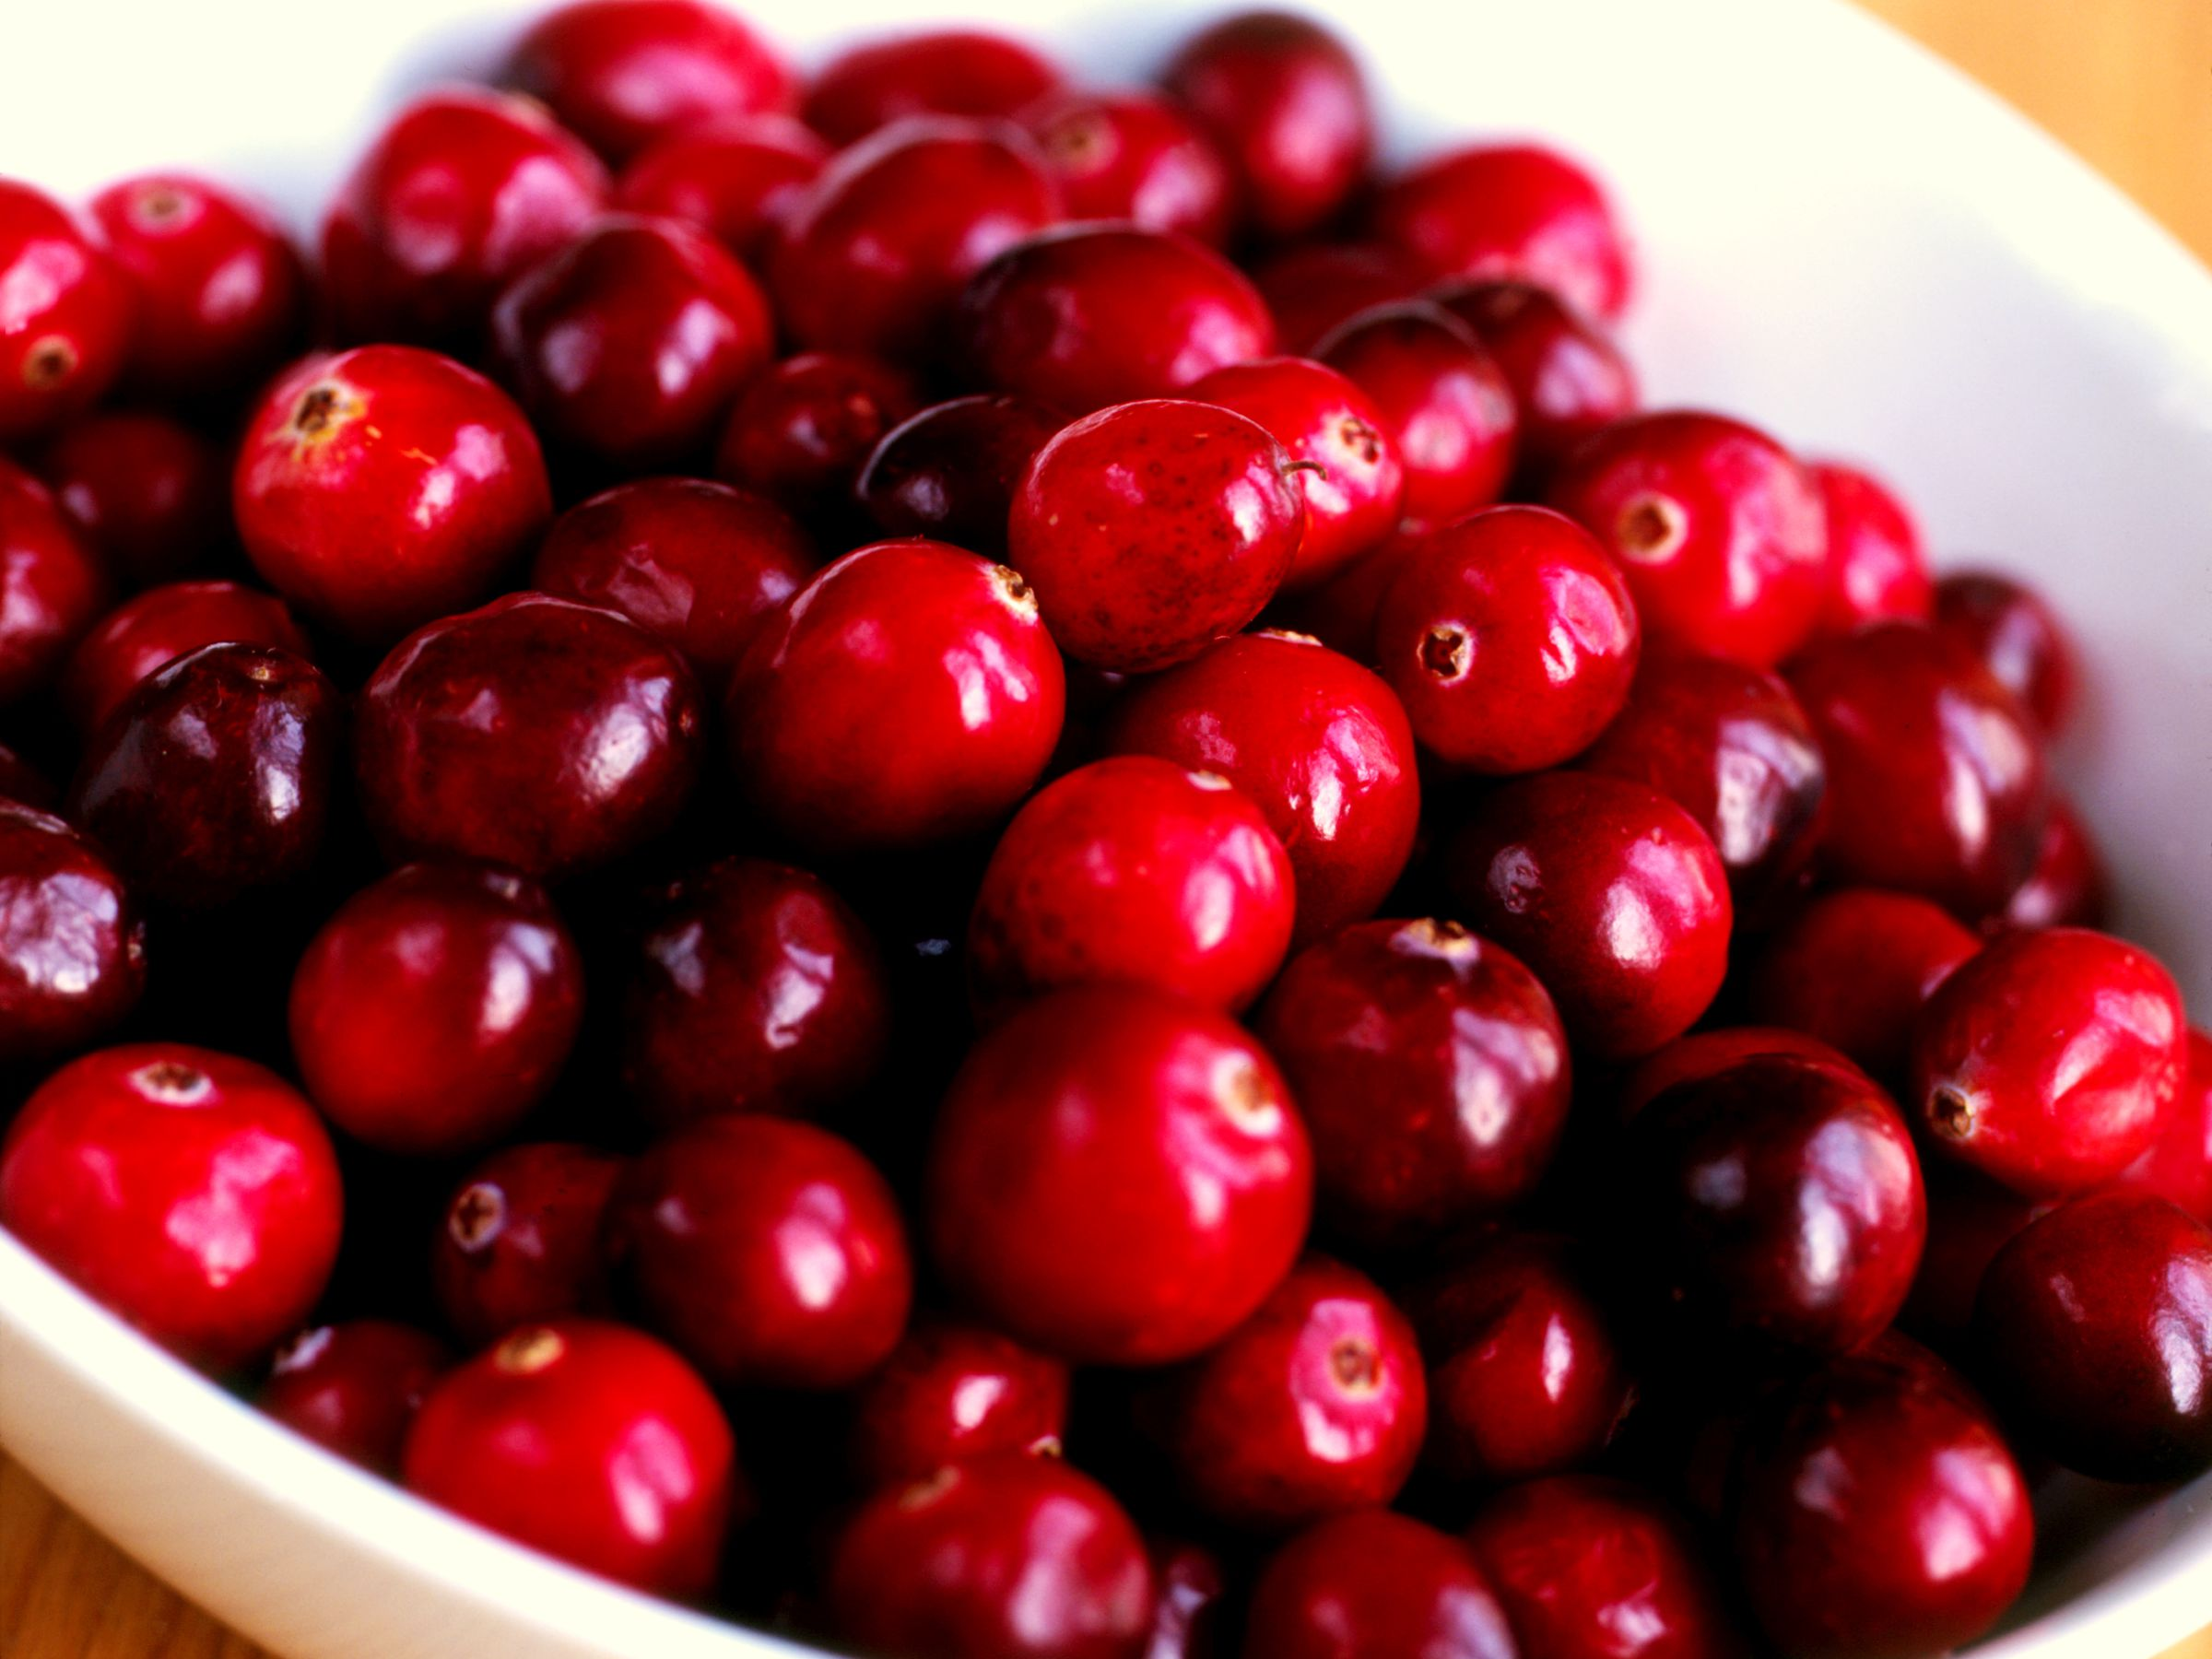 Cranberry selection and storage information